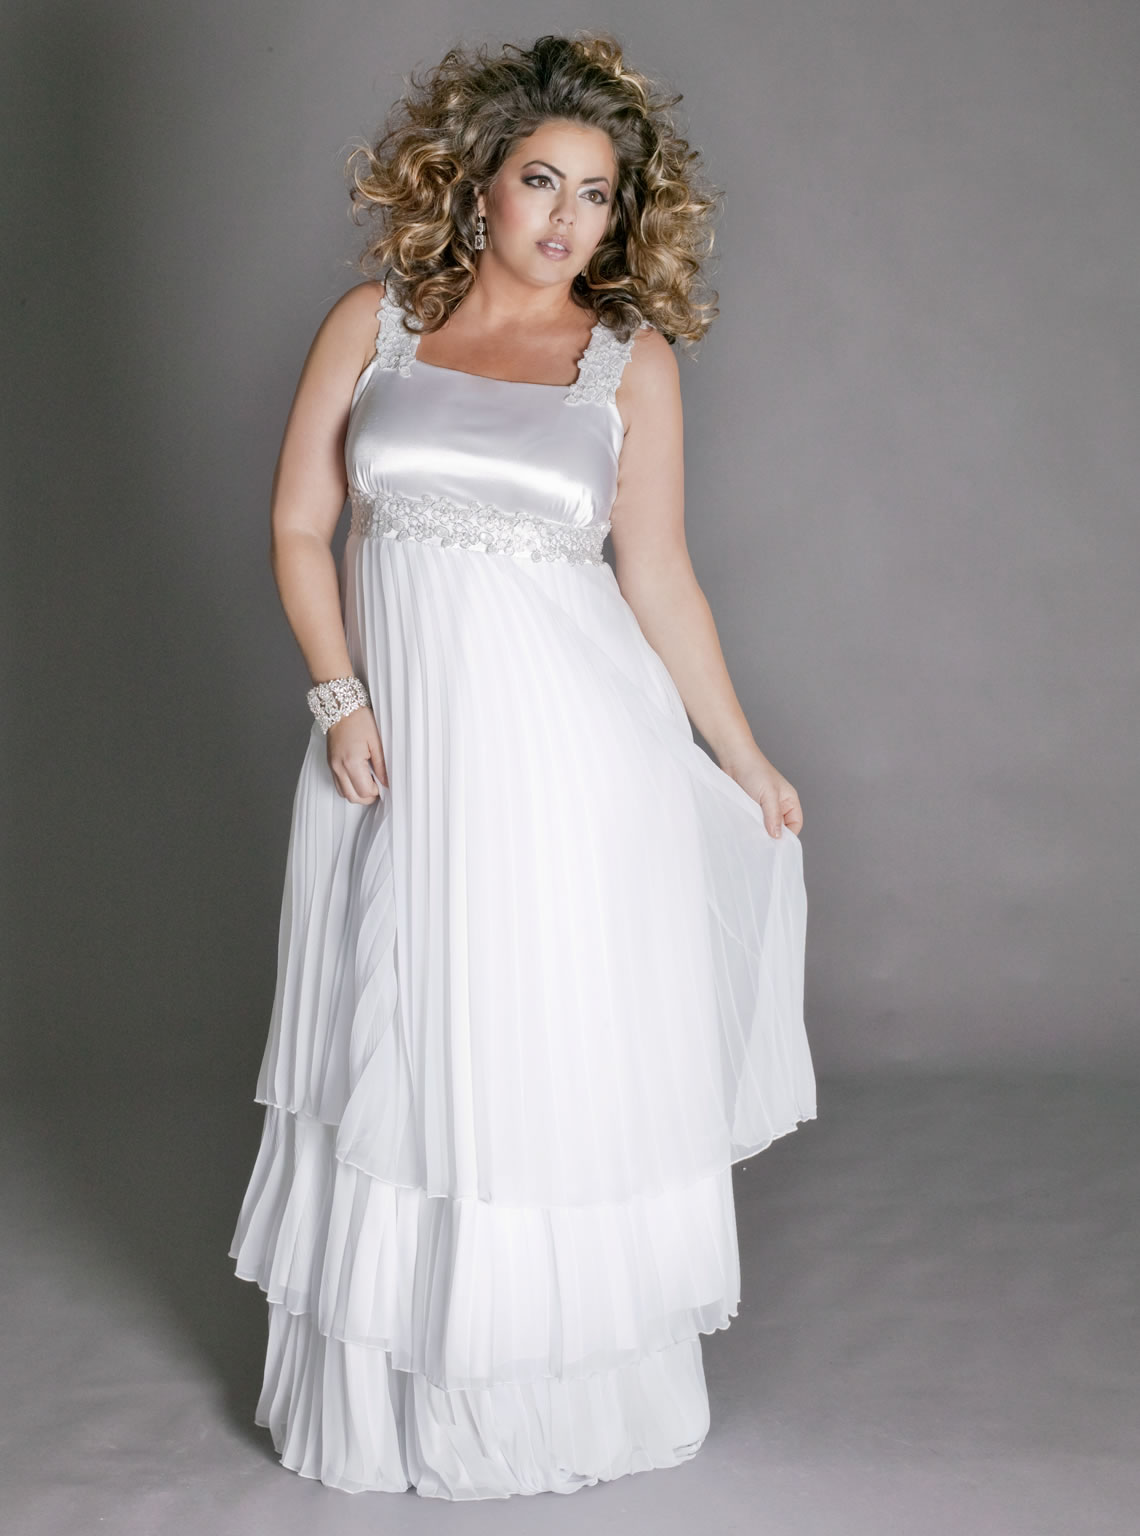 Plus size maternity bridesmaid dresses plus size maternity bridesmaid dresses 79 ombrellifo Choice Image